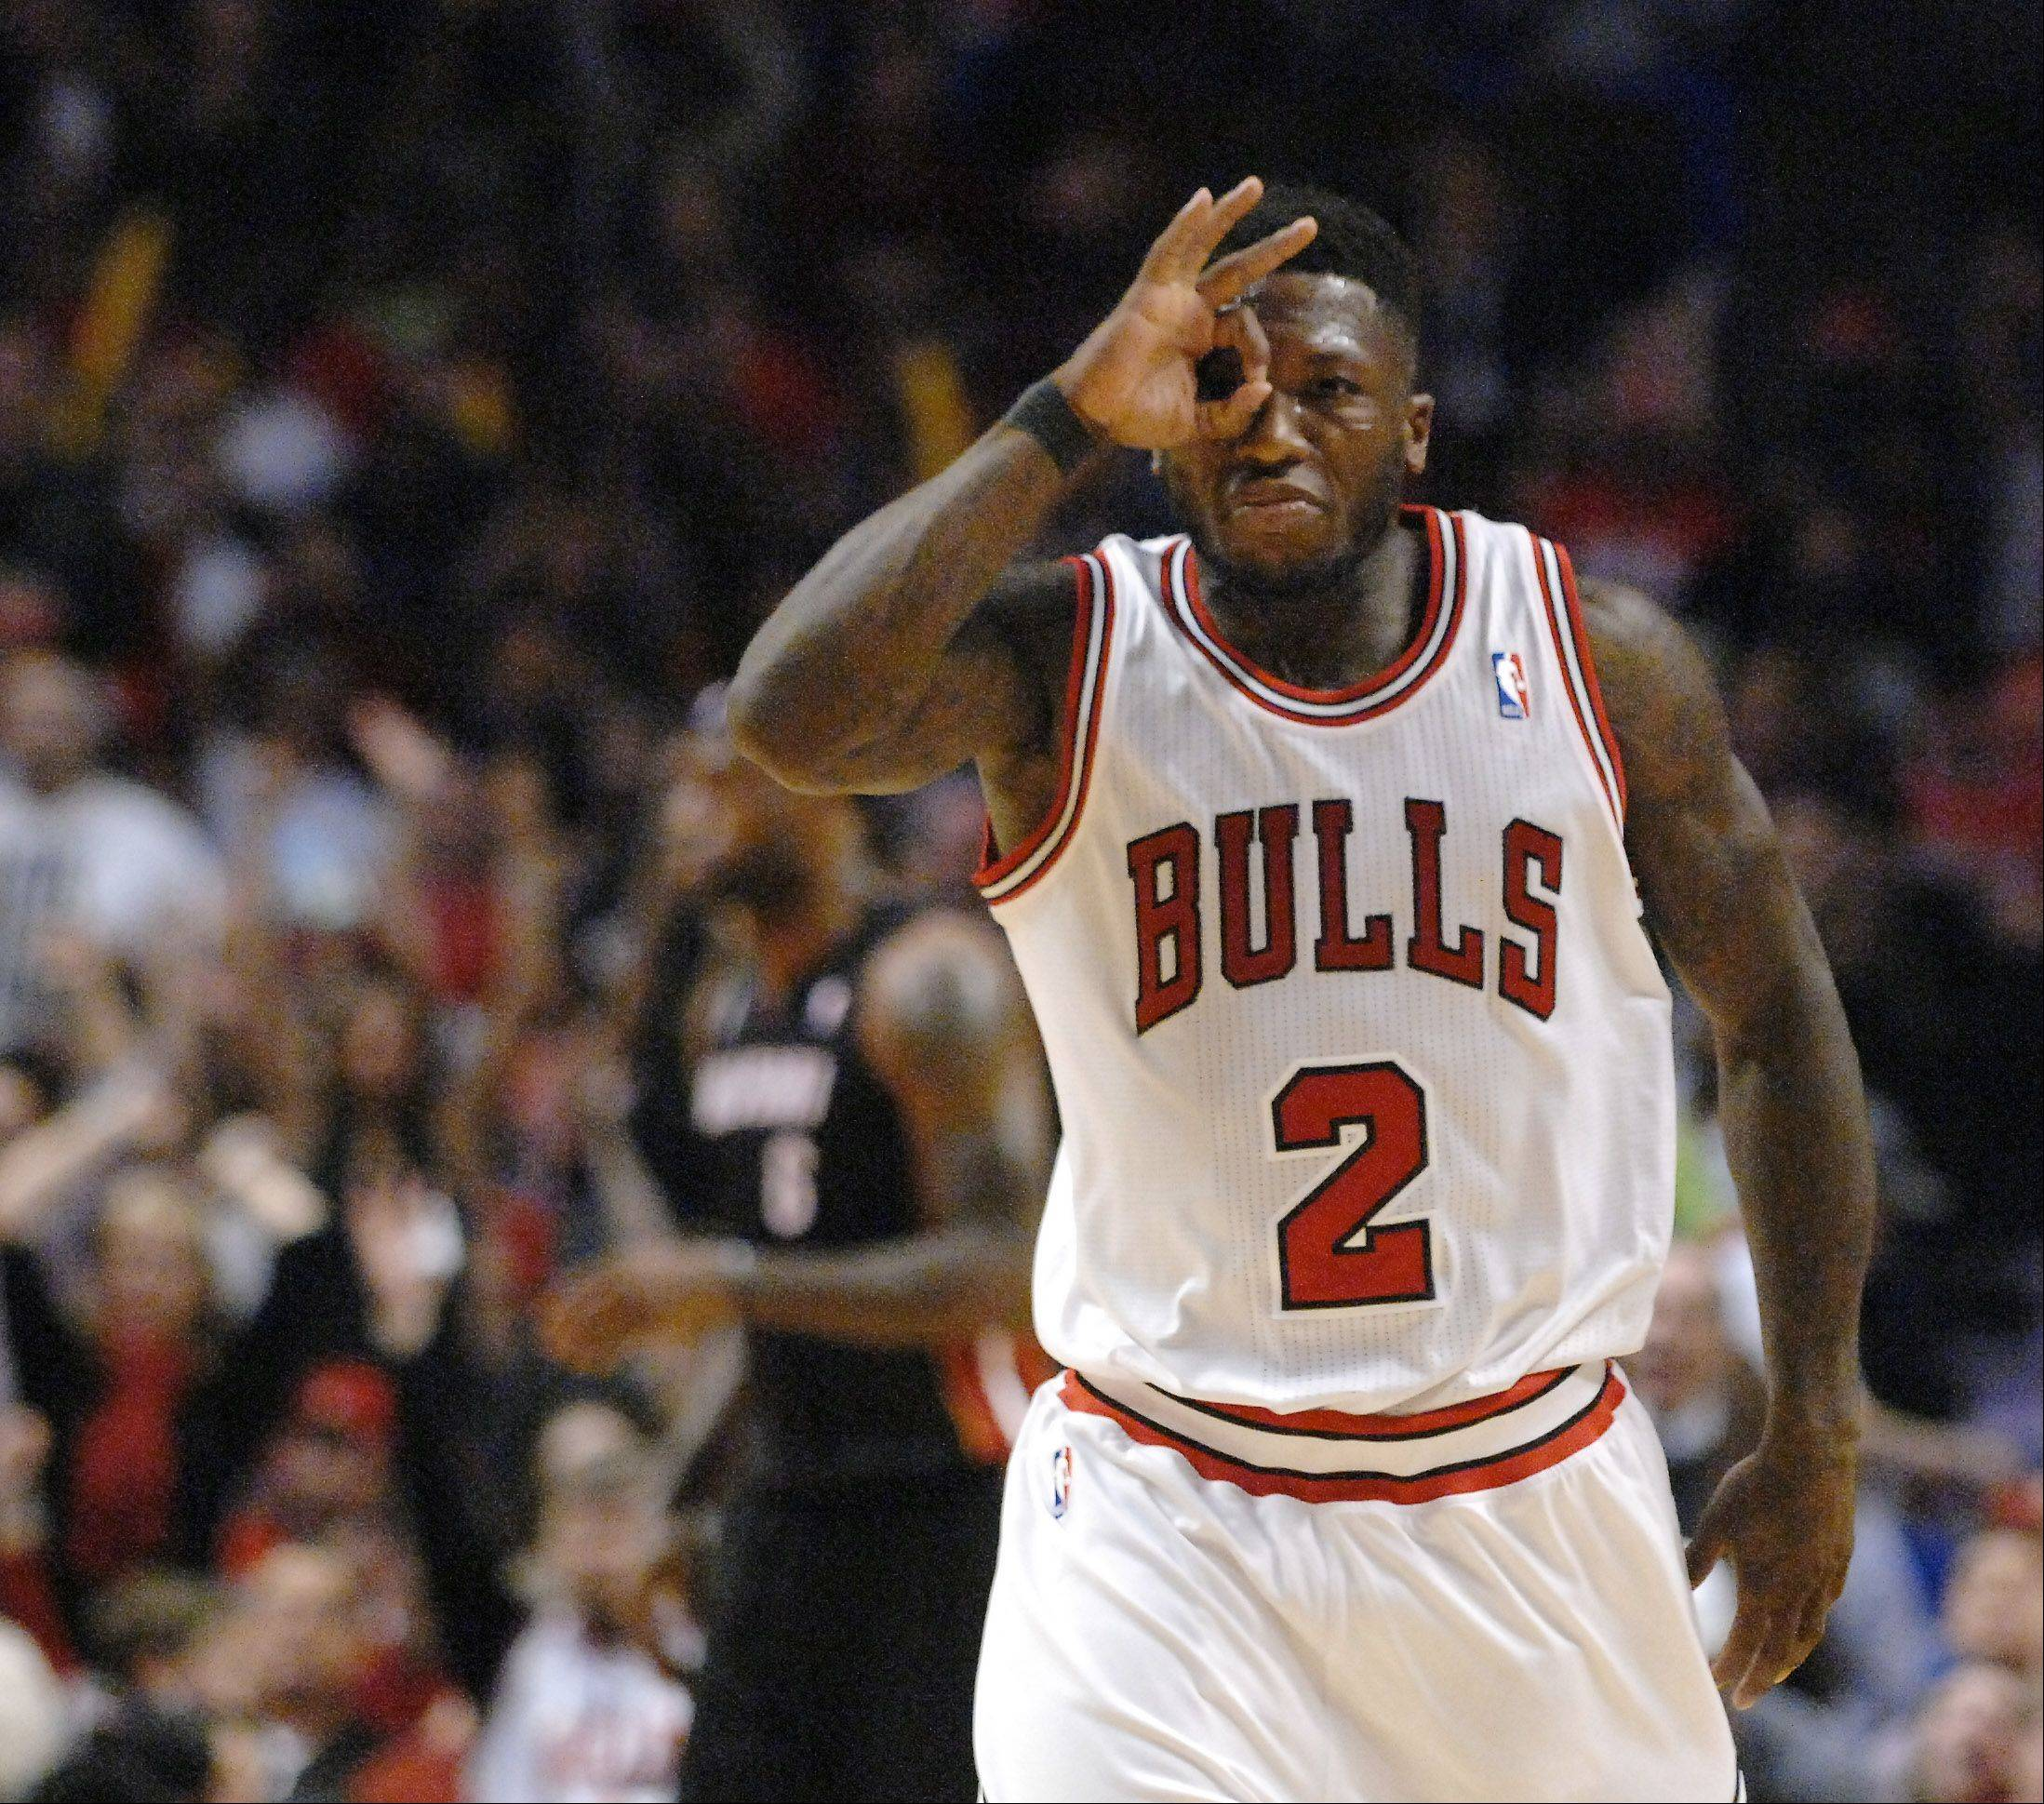 Bulls point guard Nate Robinson celebrates a three-pointer during the NBA playoffs. If his instant offense attracts offers from other teams, the Bulls will likely lose him.